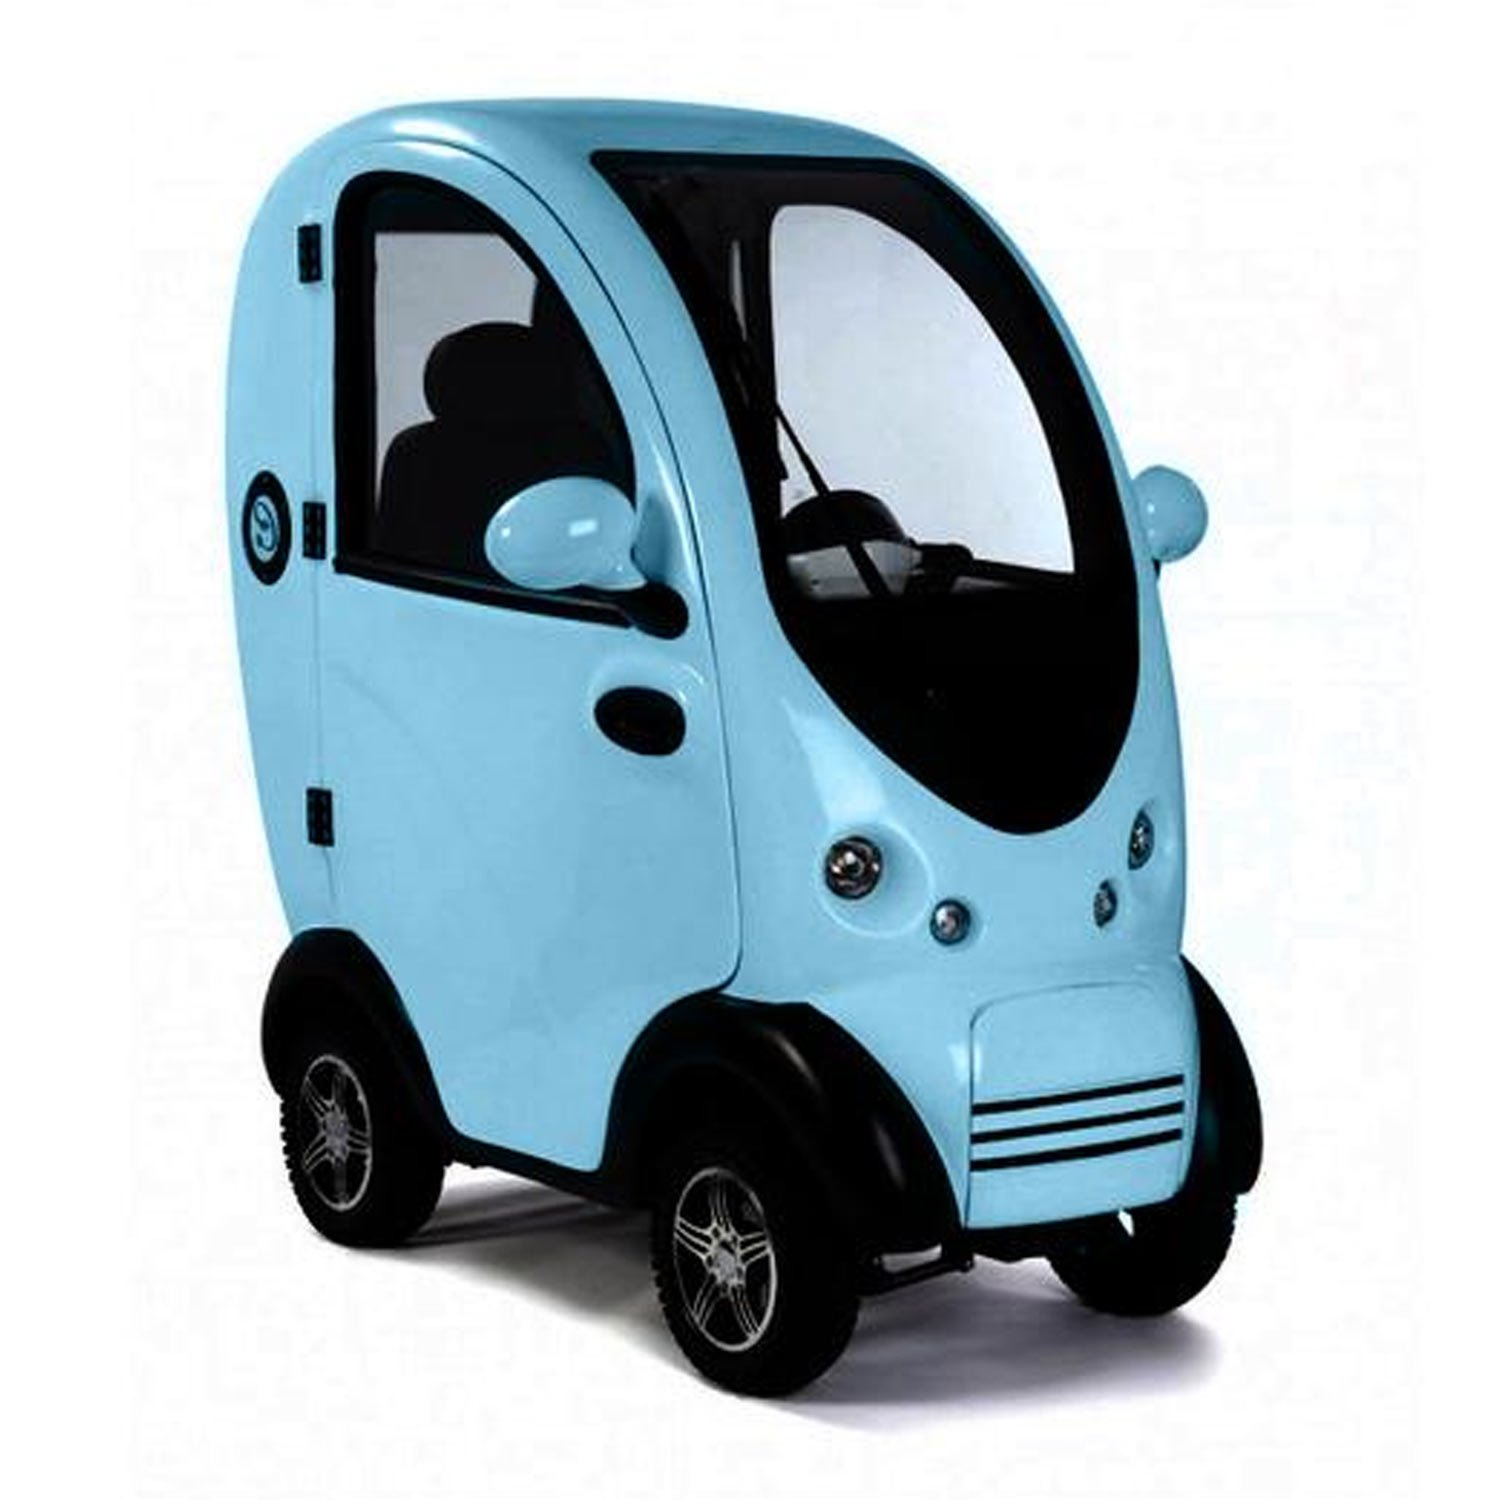 Shropshire Mobility Solutions - Blue MK2 Cabin Car Suppliers - mk2 cabin car for sale